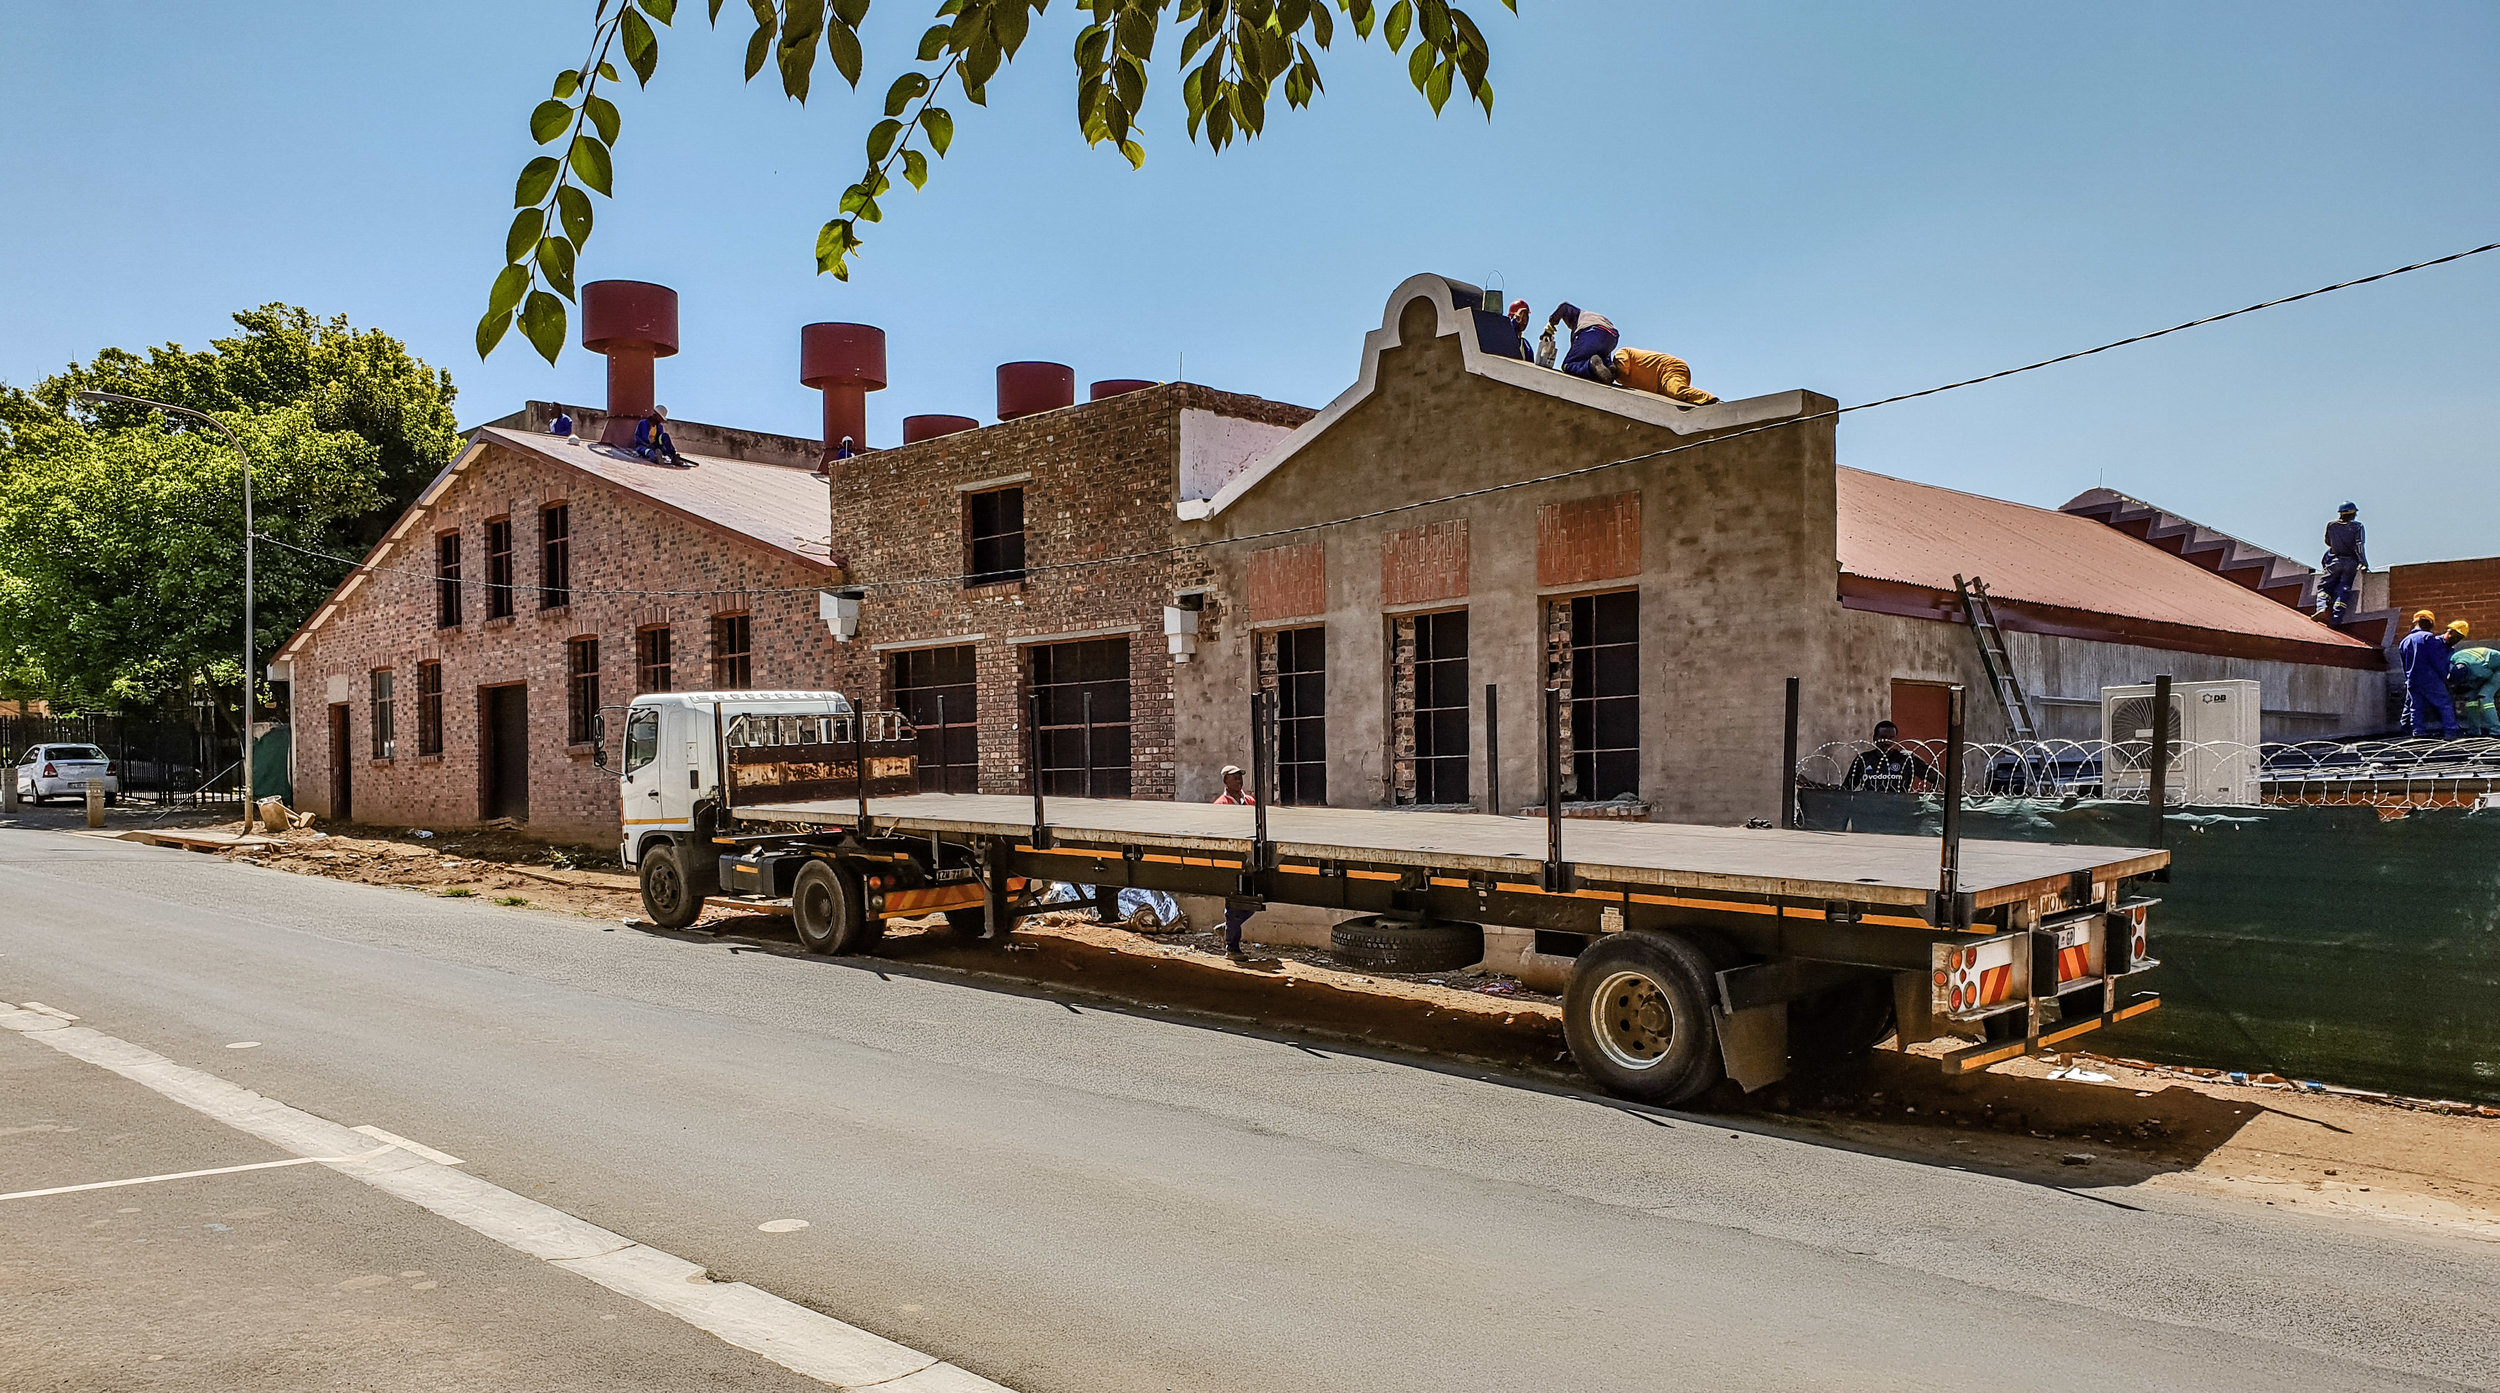 Rand Steam restoration in progress - The Moolman Group restored the site to its former glory.